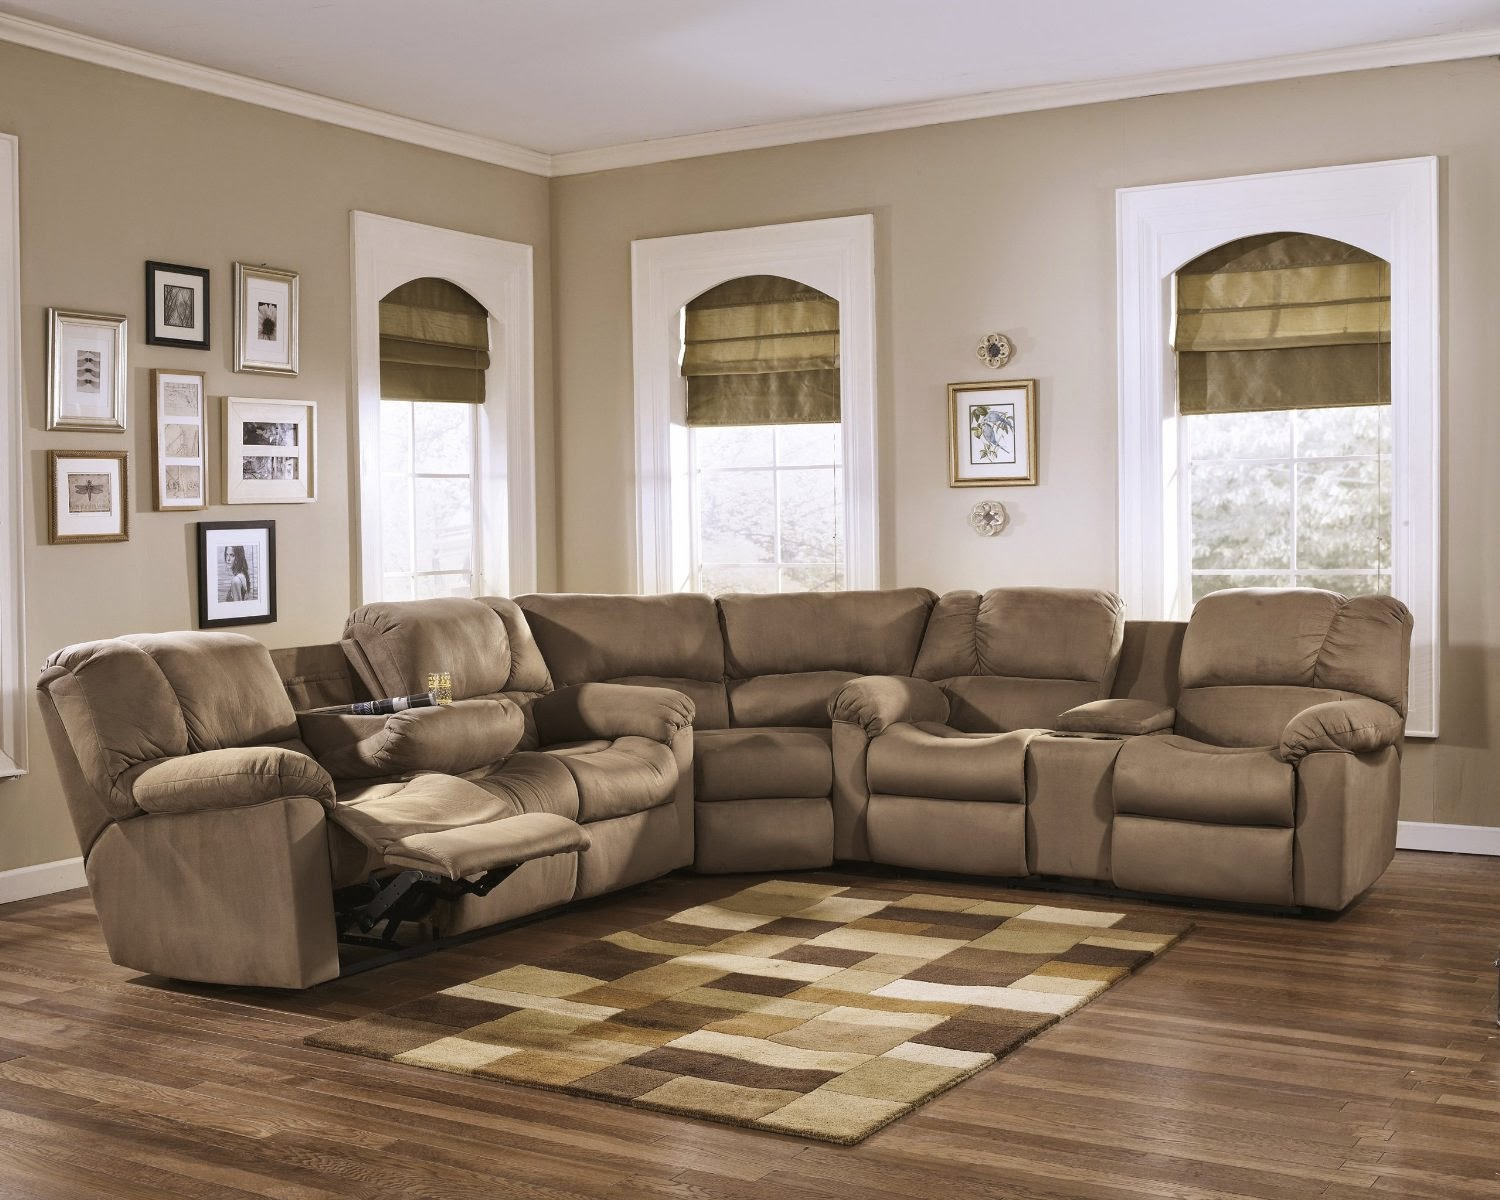 Best Leather Reclining Sofa Brands Reviews: Curved Leather ...